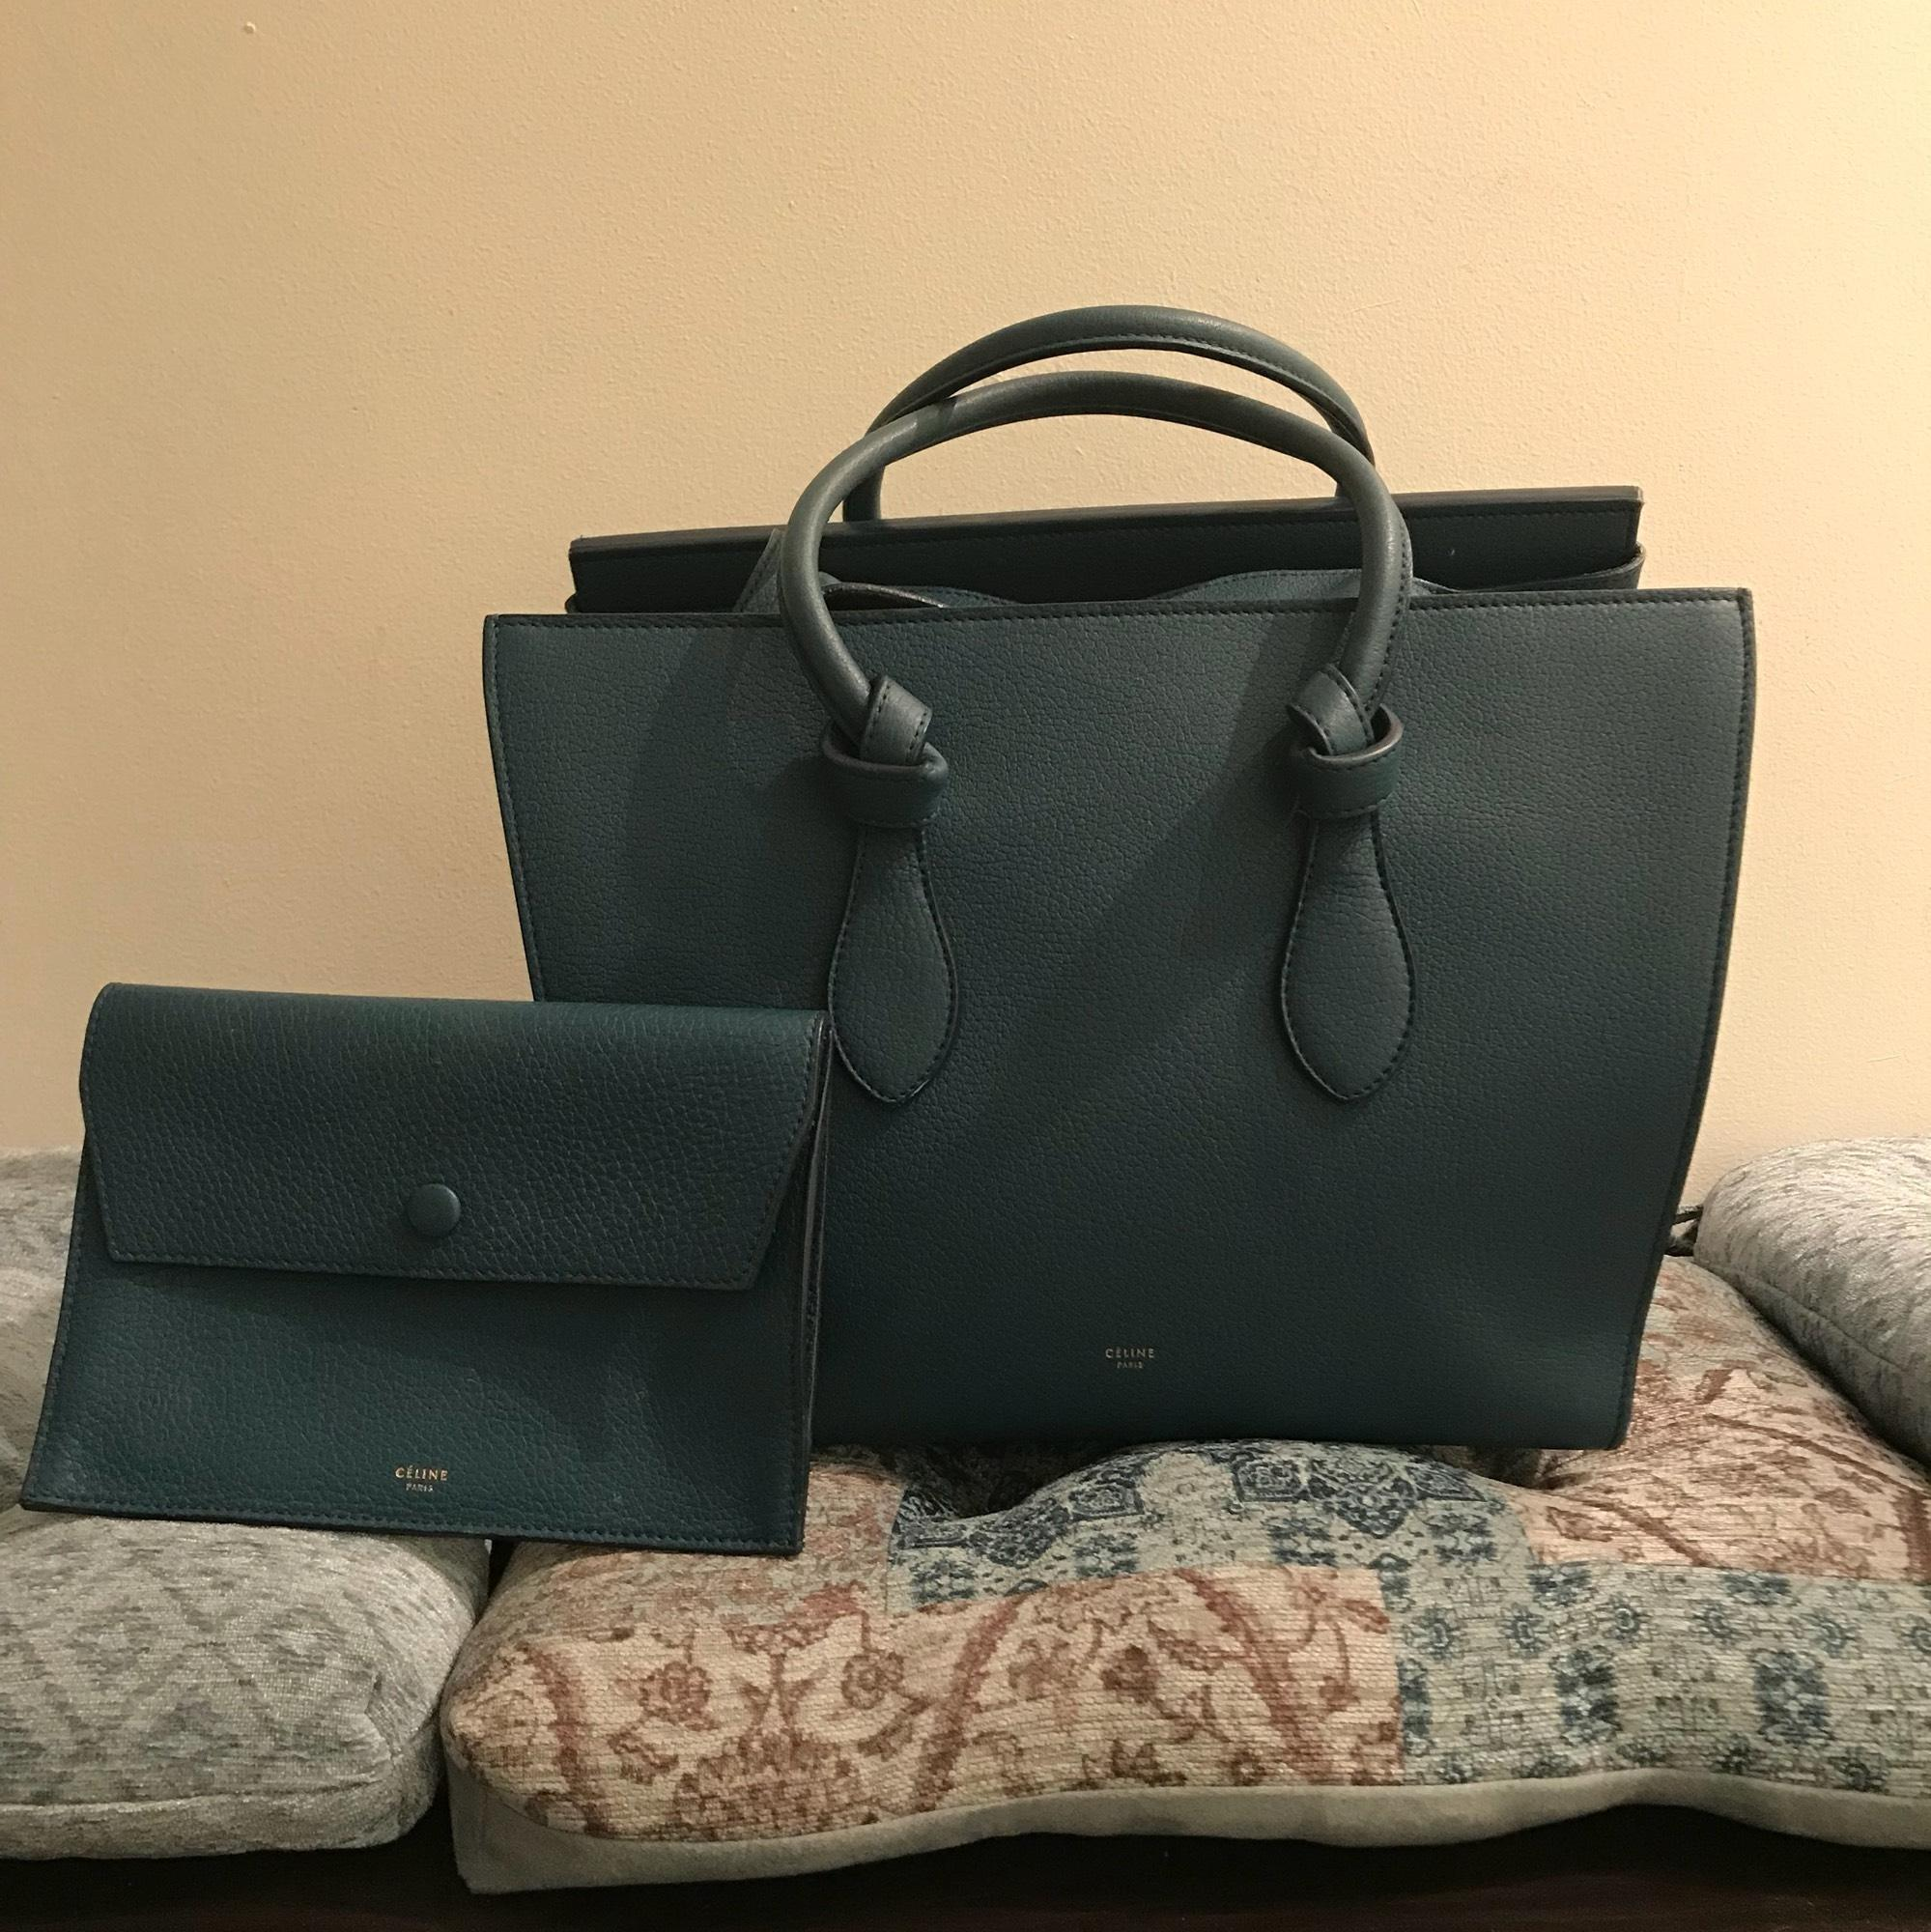 1bc1ae0fd0a0 Céline tie knot grained leather denim color tote tradesy jpg 959x960 Celine  tie handbag